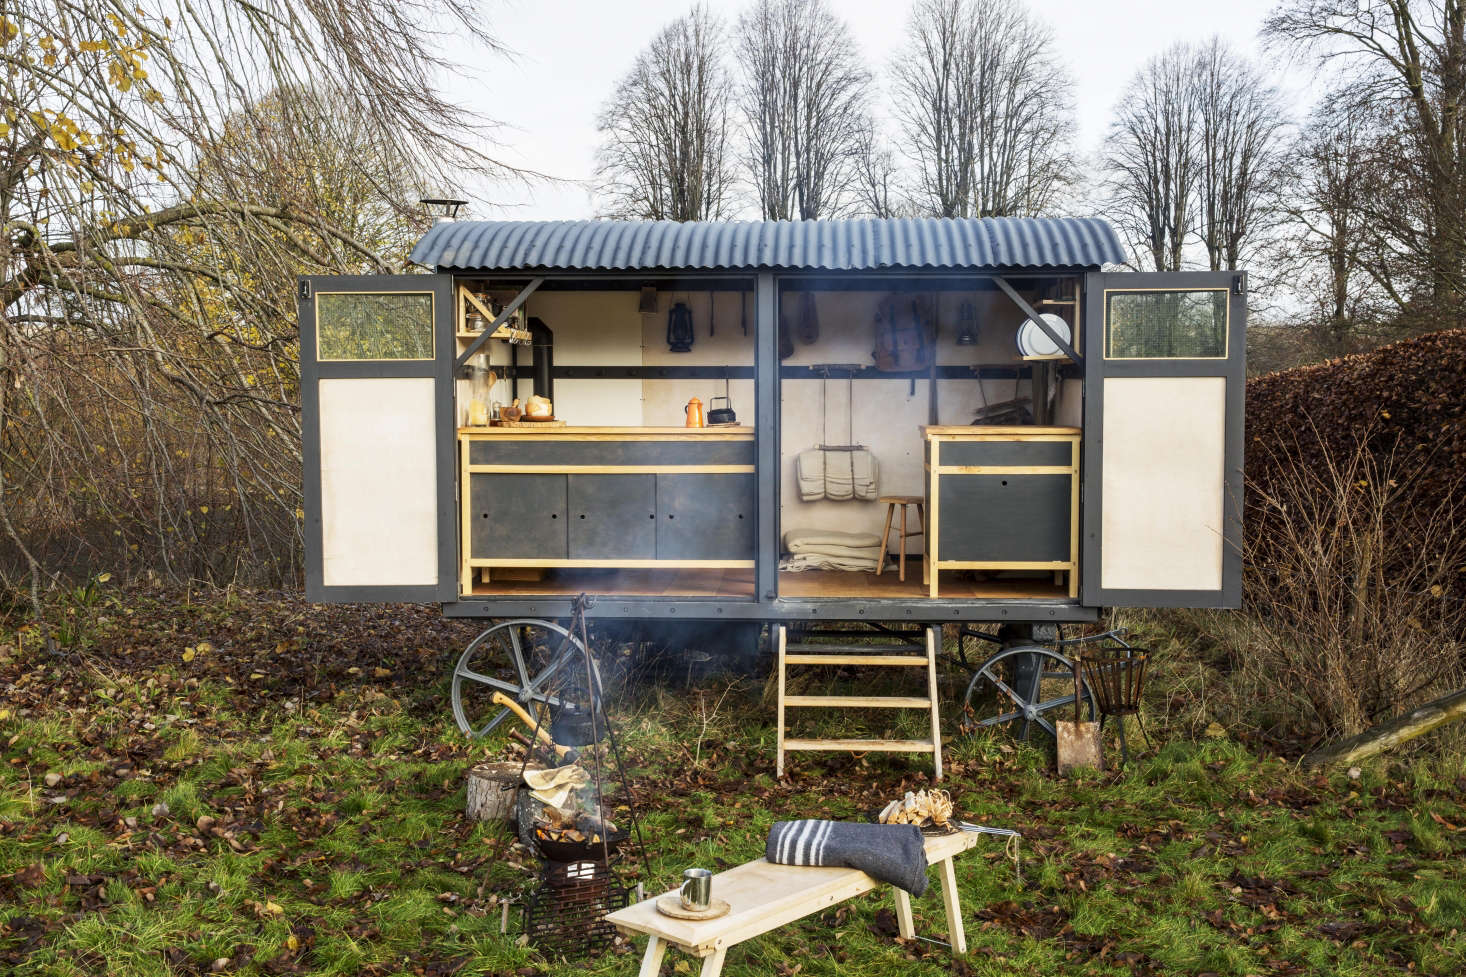 Ideas to take away from hipster homesteaders? Remodel a shepherd's hut and cook outdoors in the fields, raise a hammock, and let sheep graze instead of mowing. Read more in11 Garden Ideas to Steal from Hipster Homesteaders, one of the most popular posts of the year.